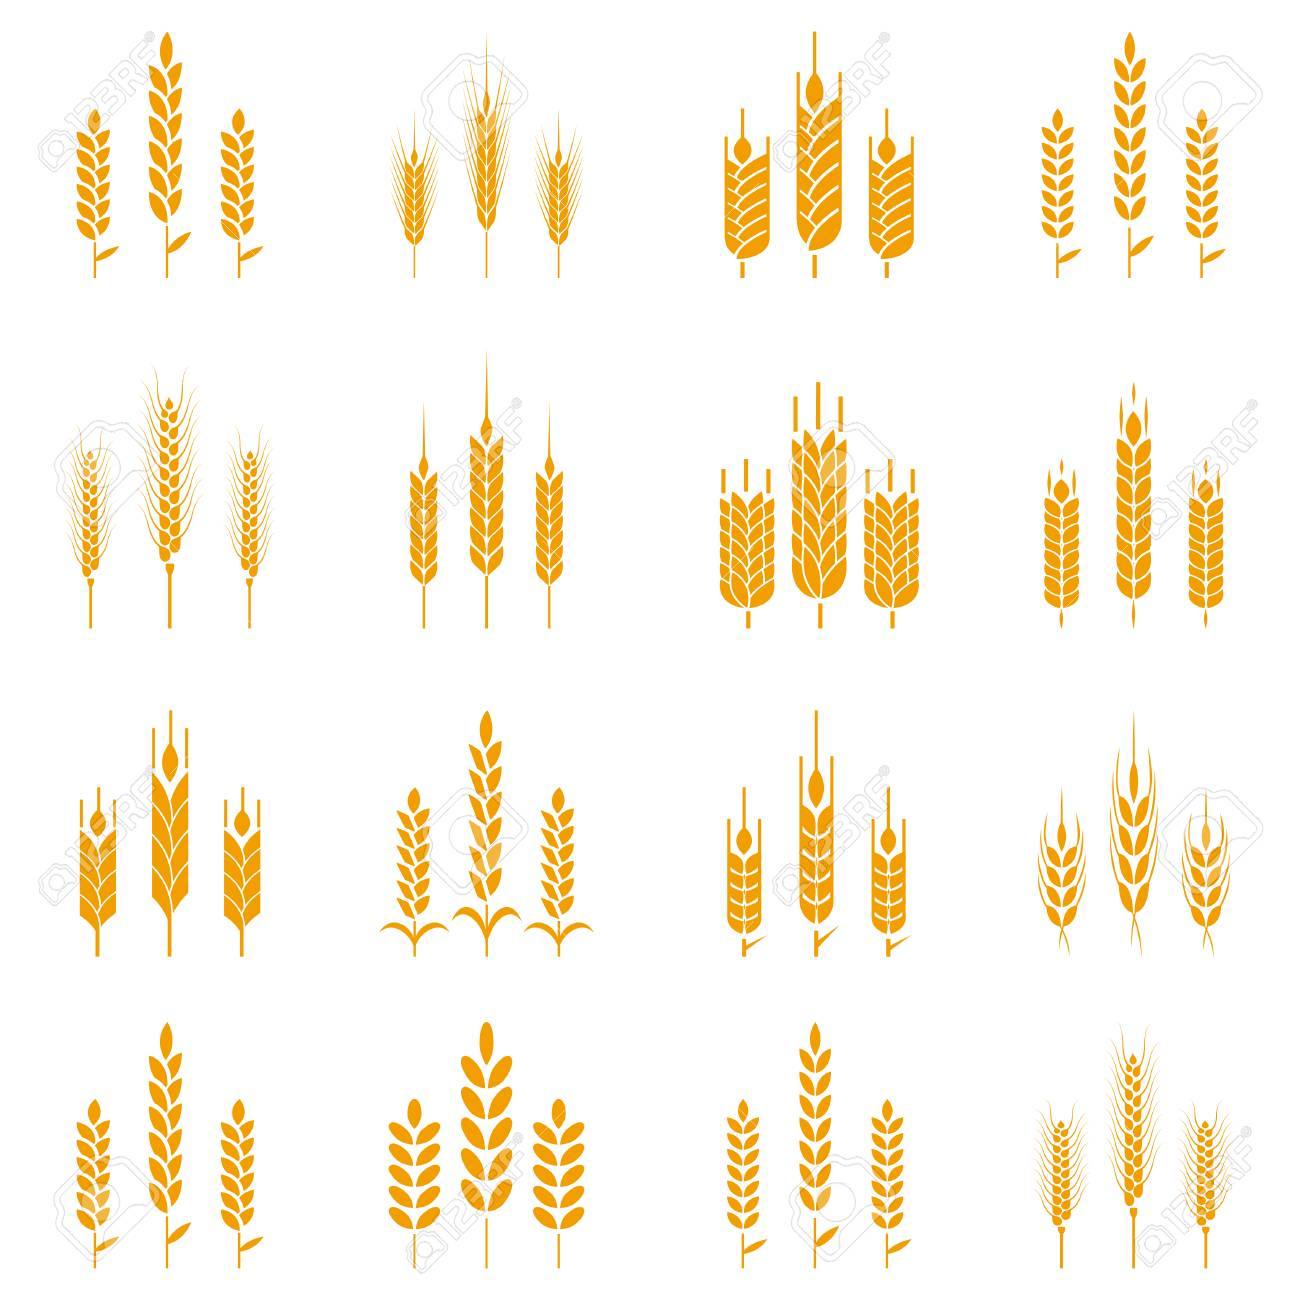 Wheat Ear Symbols For Logo Design Concept For Organic Products